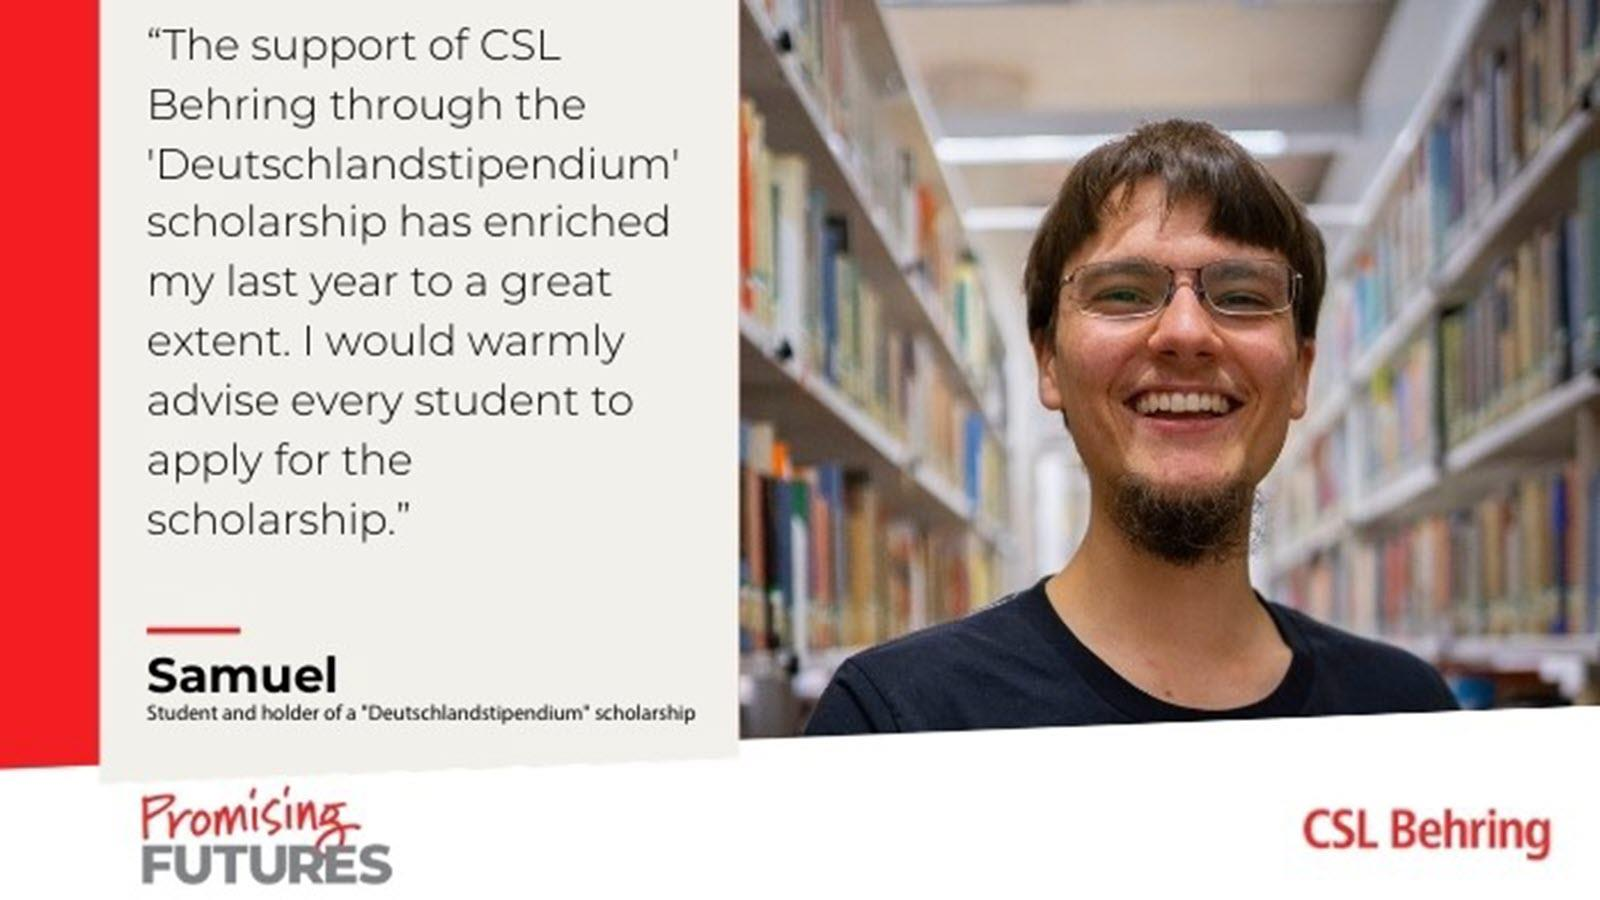 Quote from a scholarship recipient that says he warmly advises other students to apply